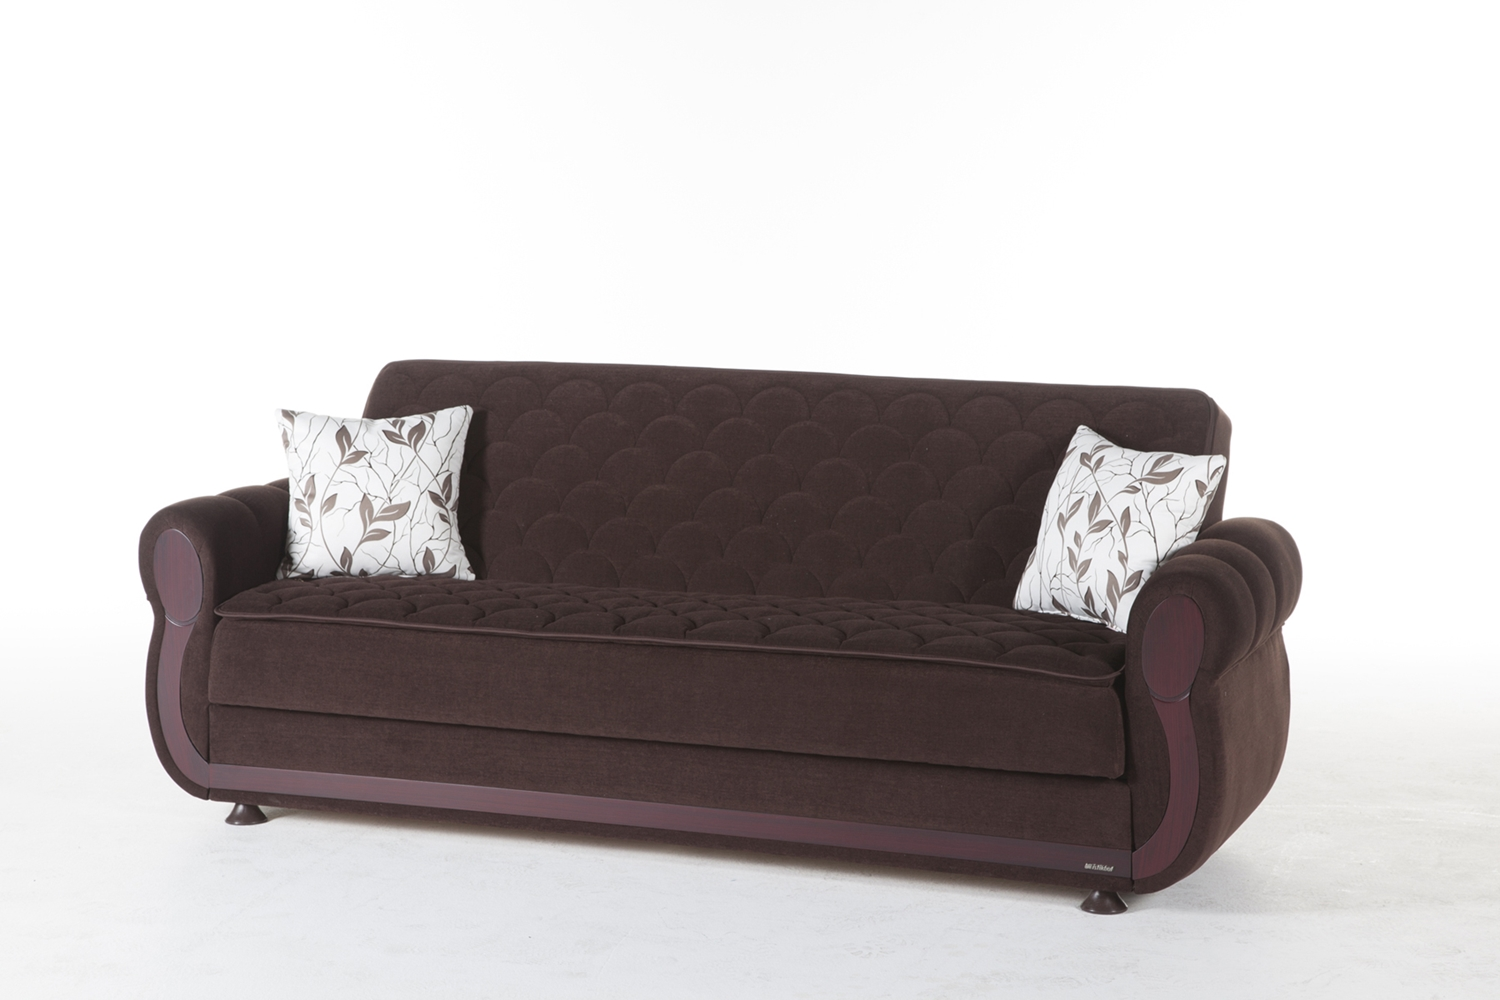 Sleeper Sofa Quick Delivery Argos Convertible Sleeper Sofa Colins Brown